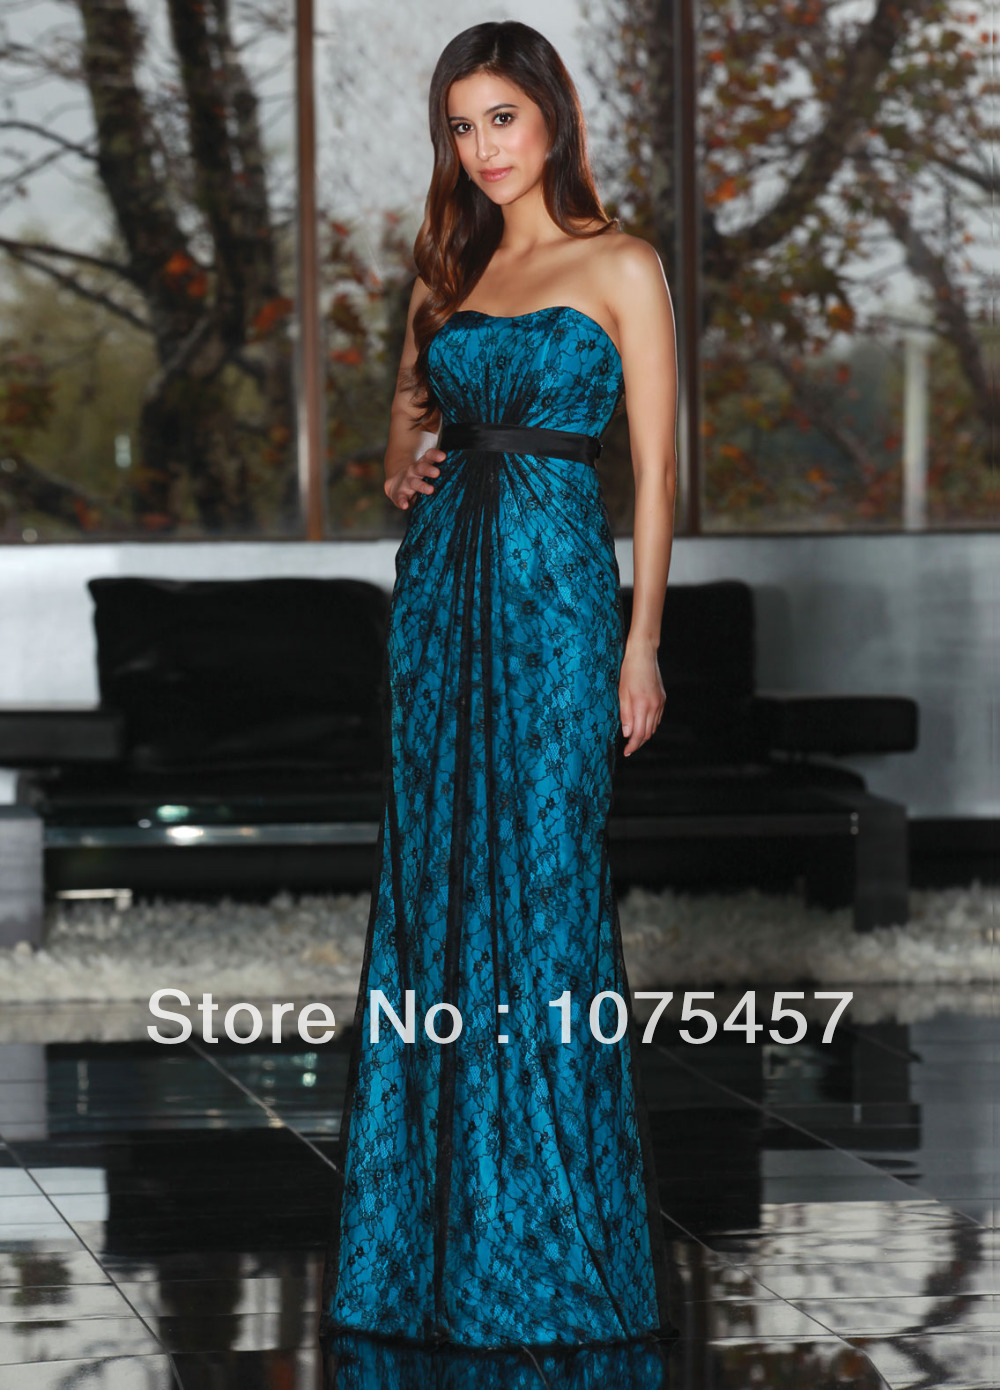 Long Black Bridesmaid Dresses With Turquoise Sash